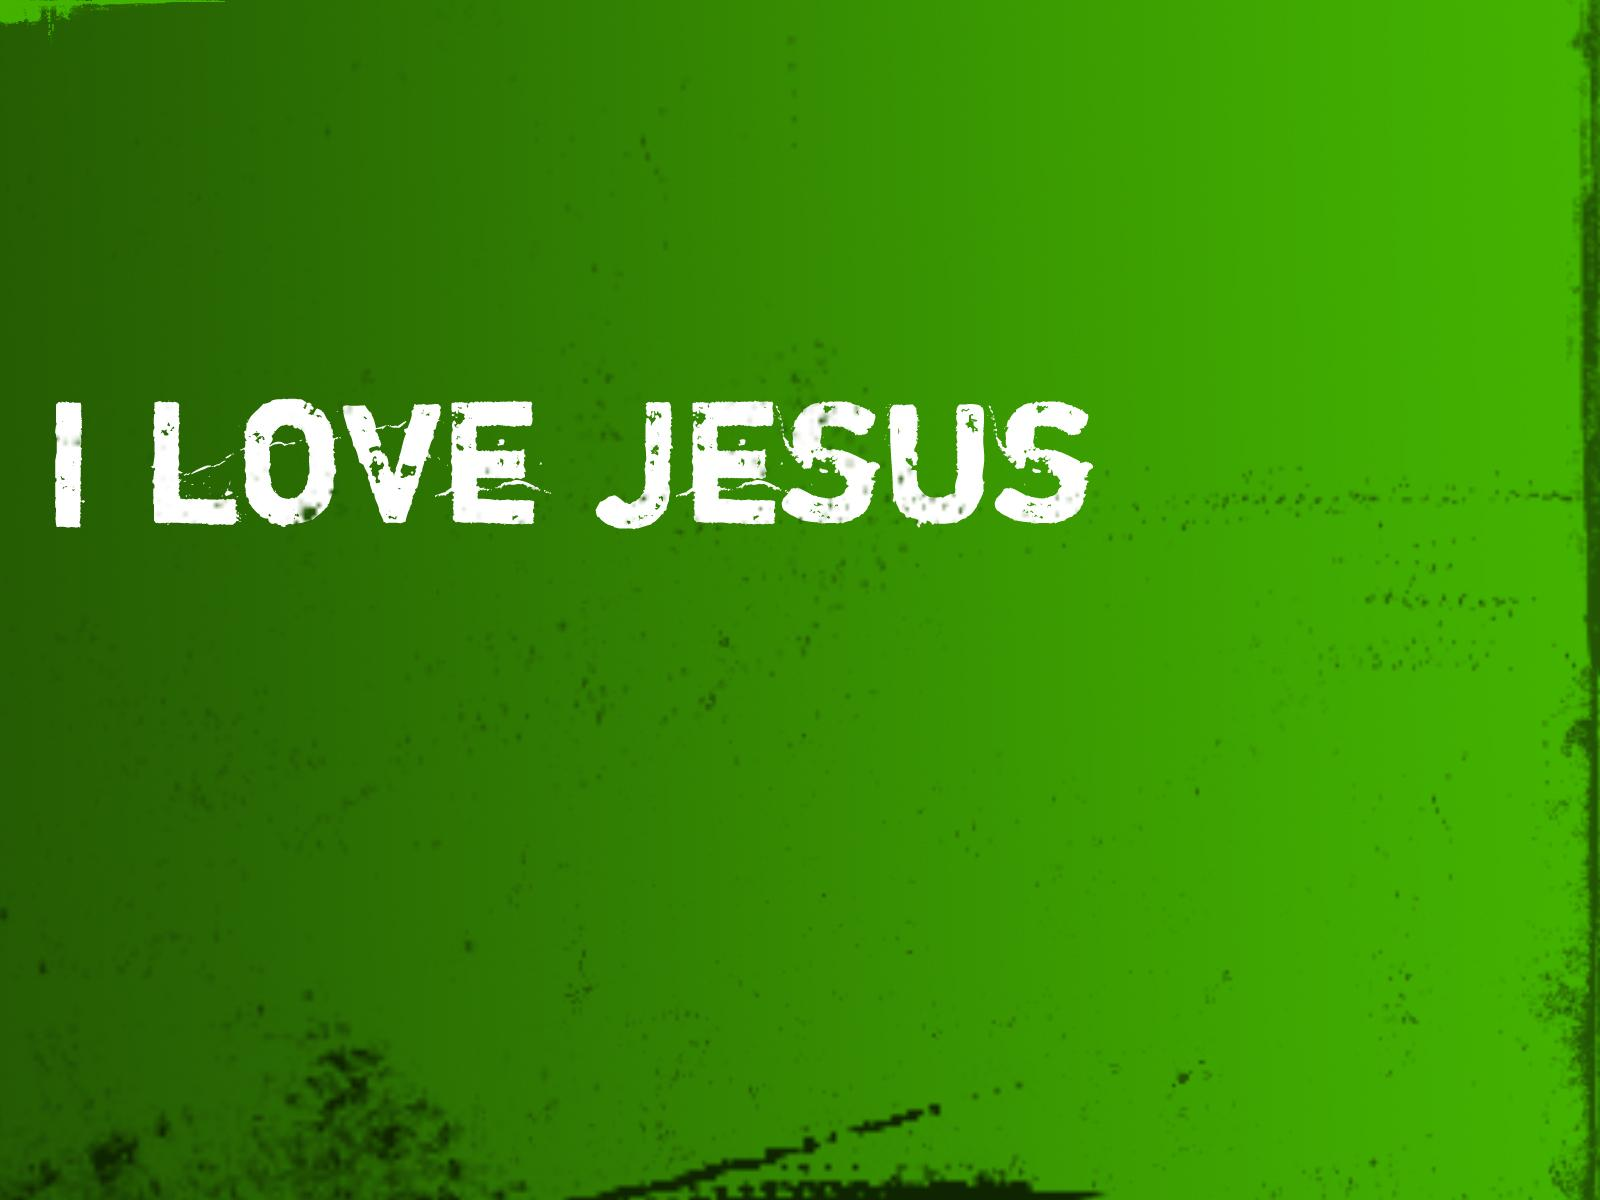 Bible Software And Wallpaper: Beautiful christian Wallpapers for Desktop